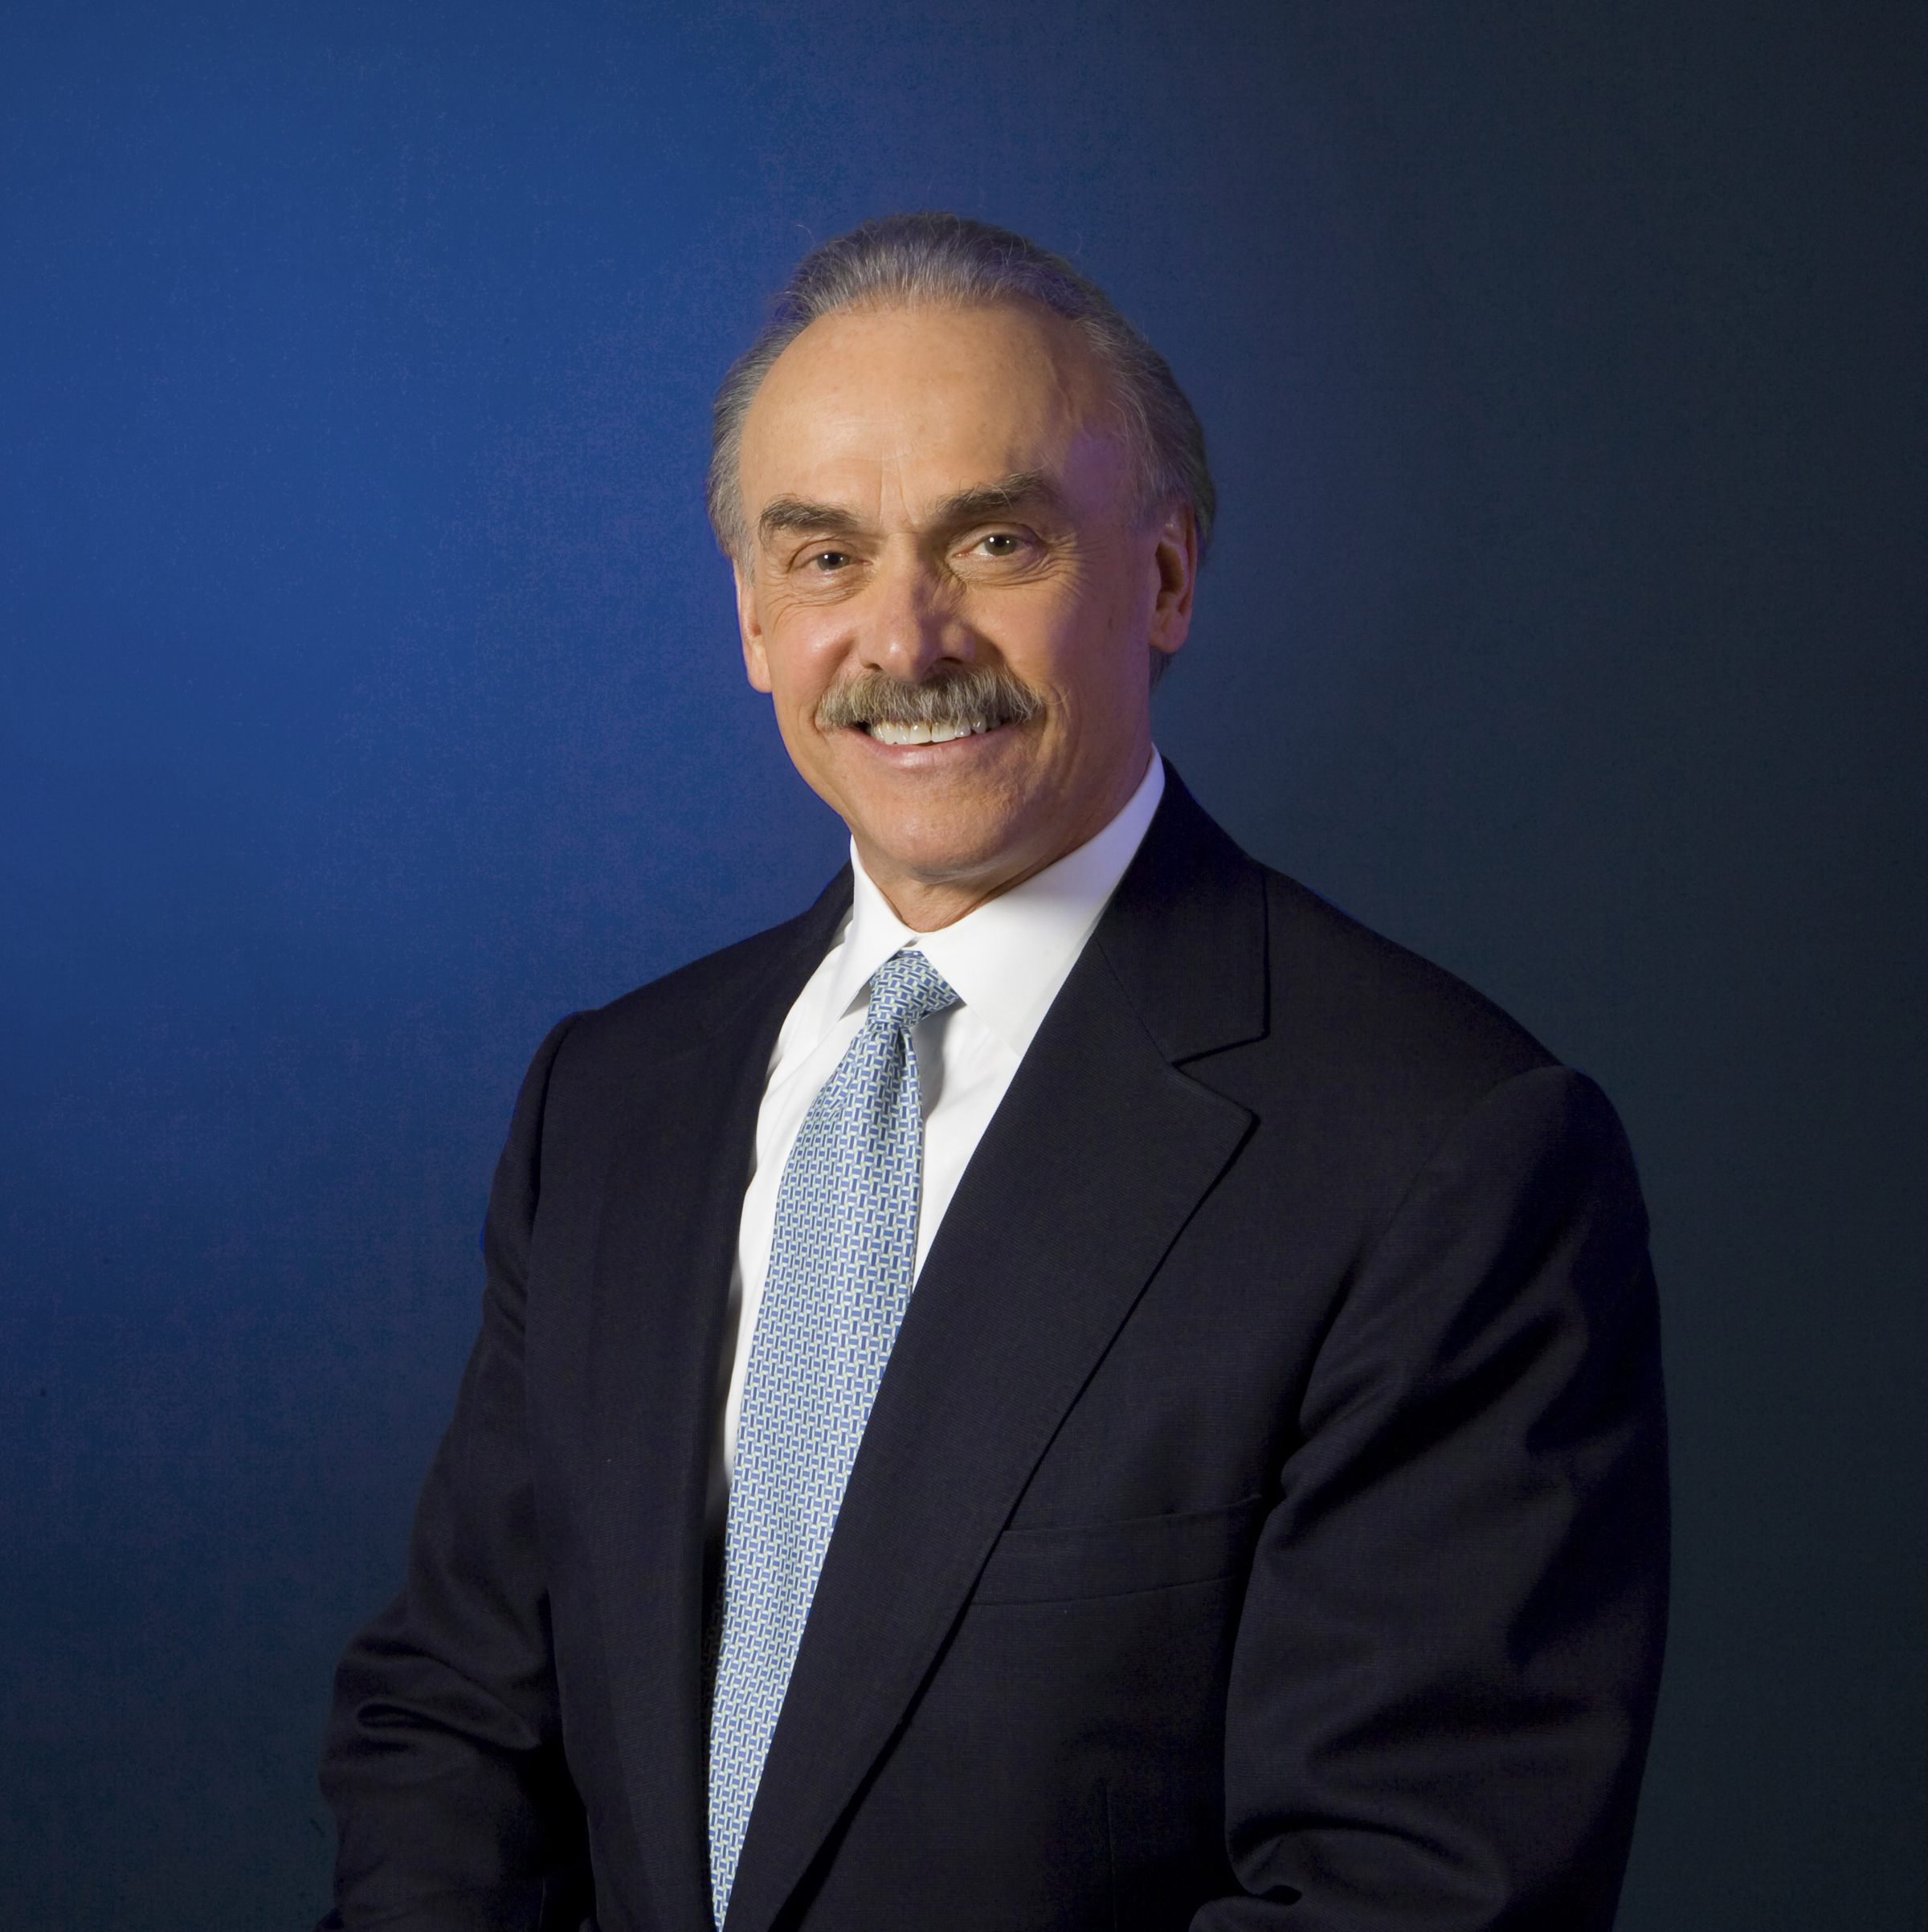 Veteran and Super Bowl Champ Rocky Bleier To Speak at OTR Conference